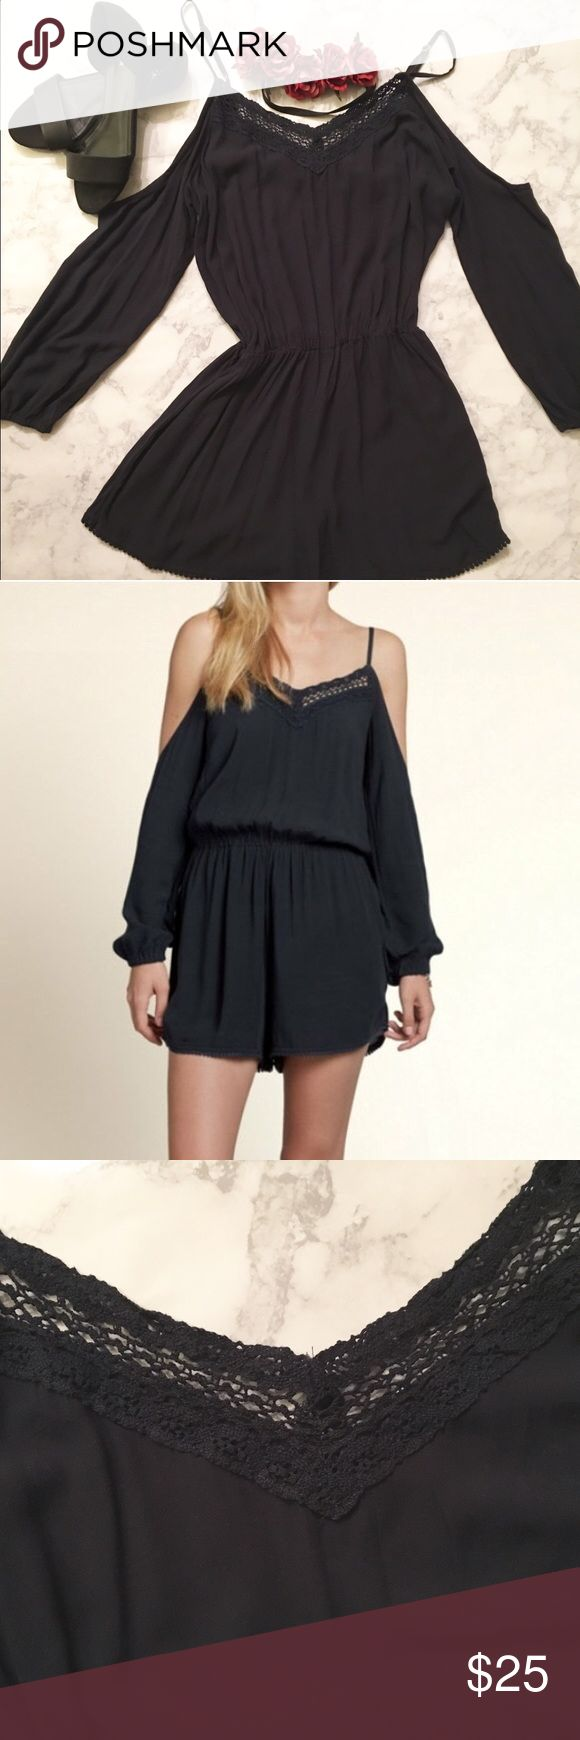 Hollister Cold Shoulder Romper *Large* Fun, boho cold-shoulder romper with crochet v-neck and pom pom detail on the shorts. True color is dark navy, but looks black. Only worn once. No trades please. Thanks! Hollister Pants Jumpsuits & Rompers